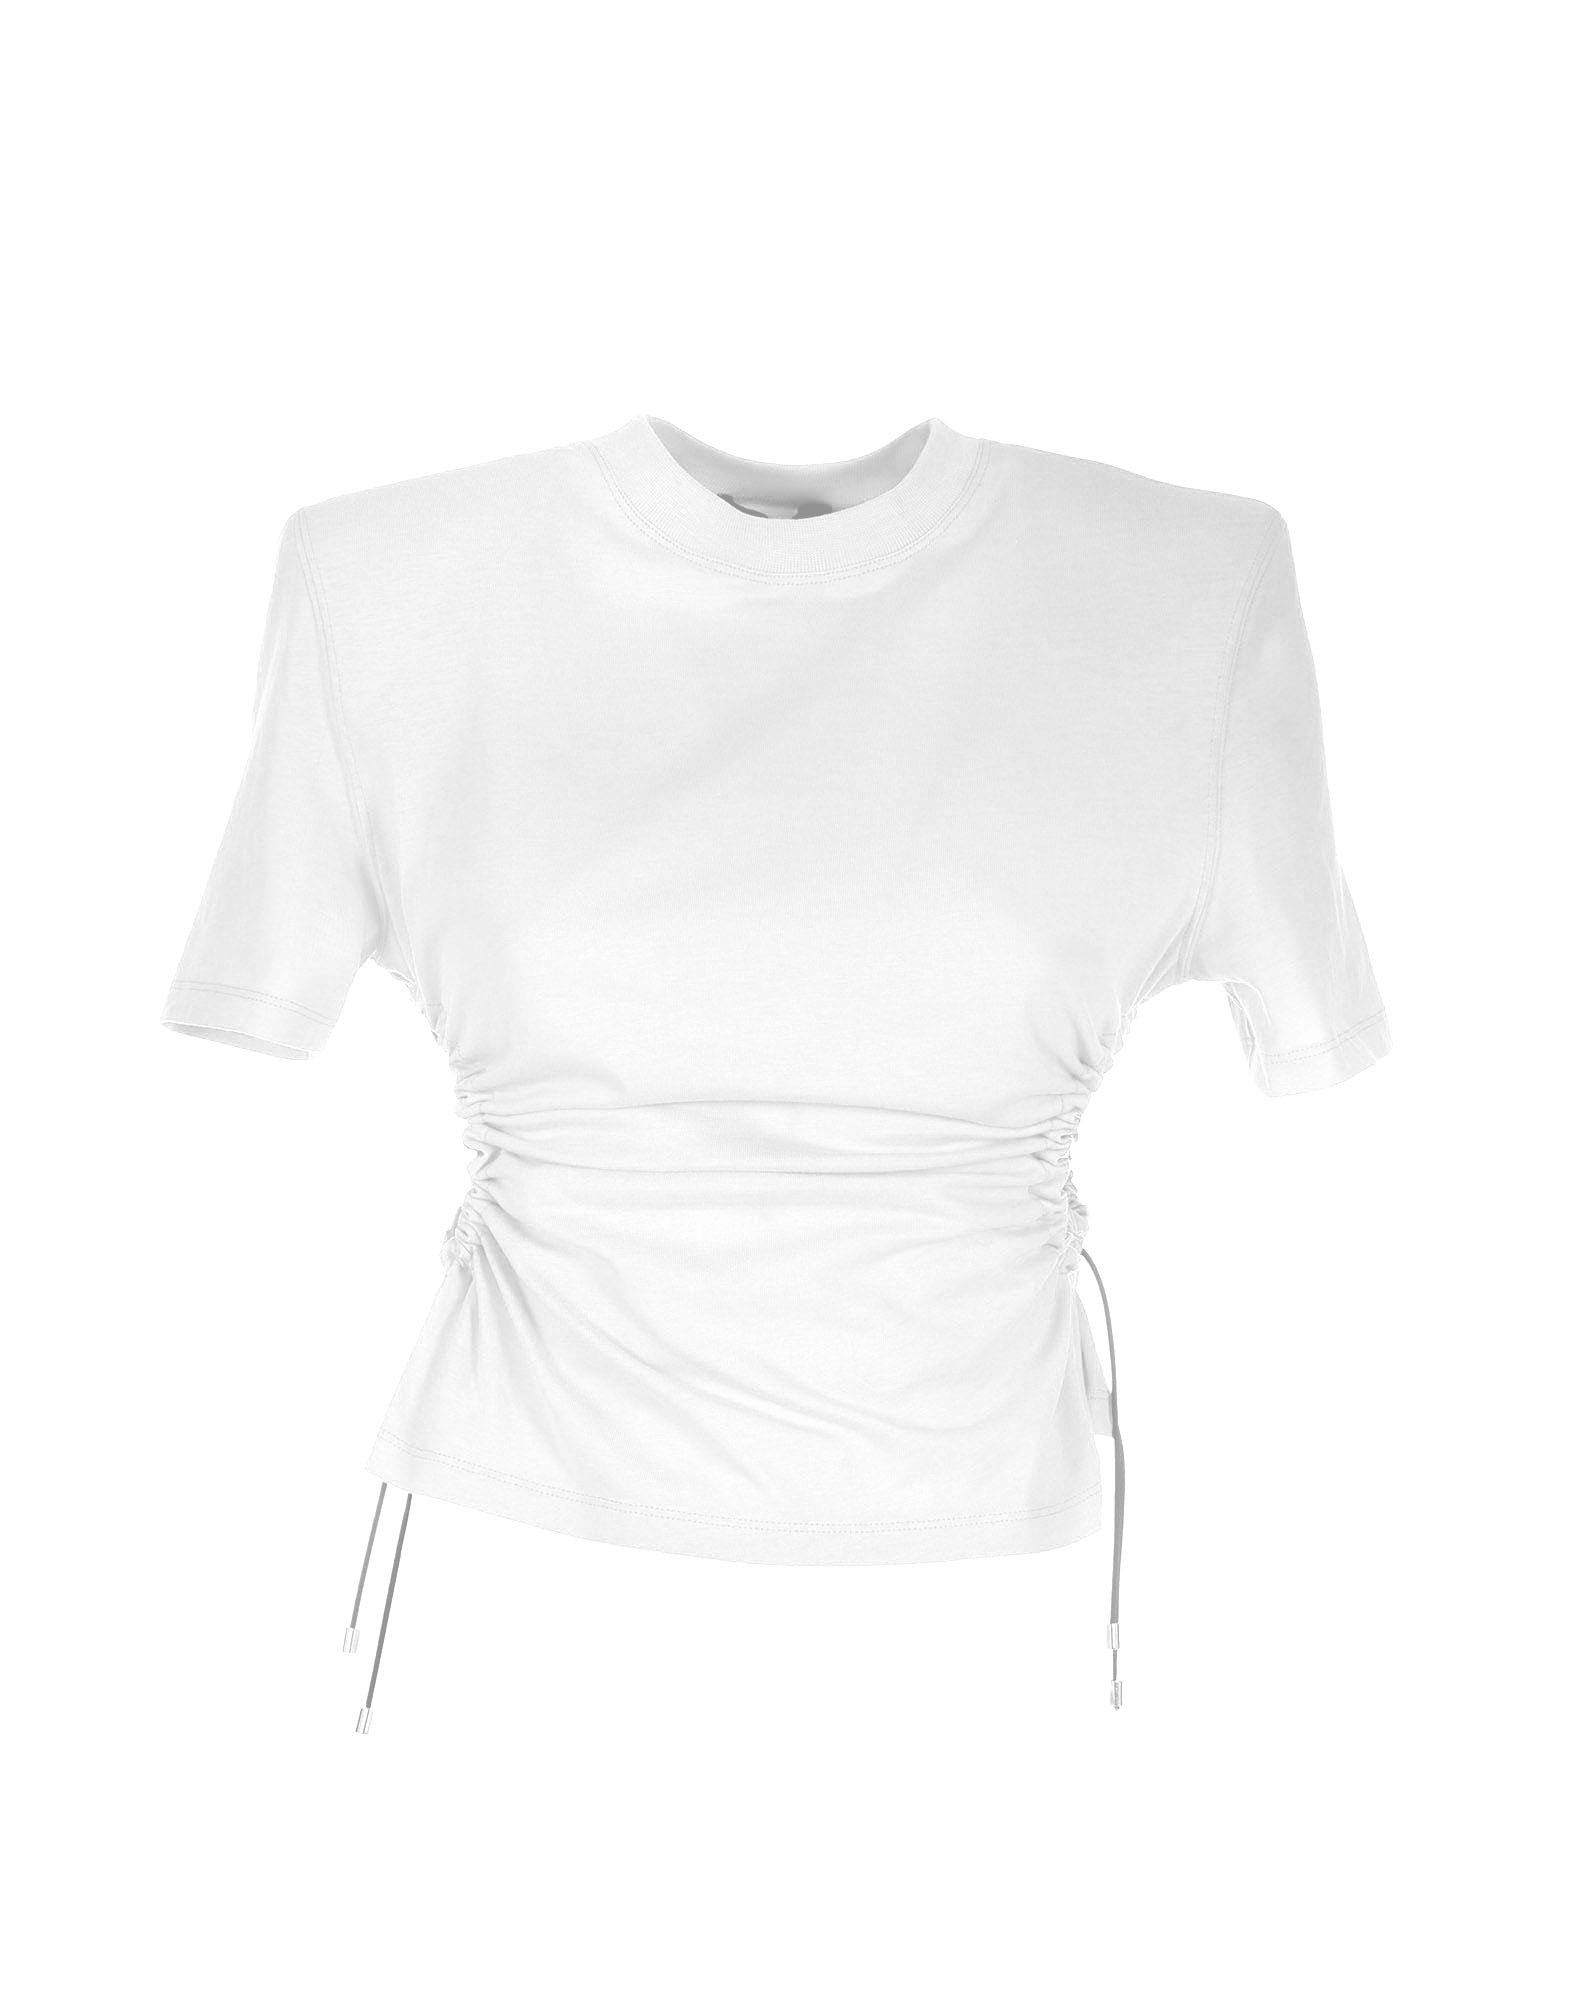 White drawstring cotton t-Shirt